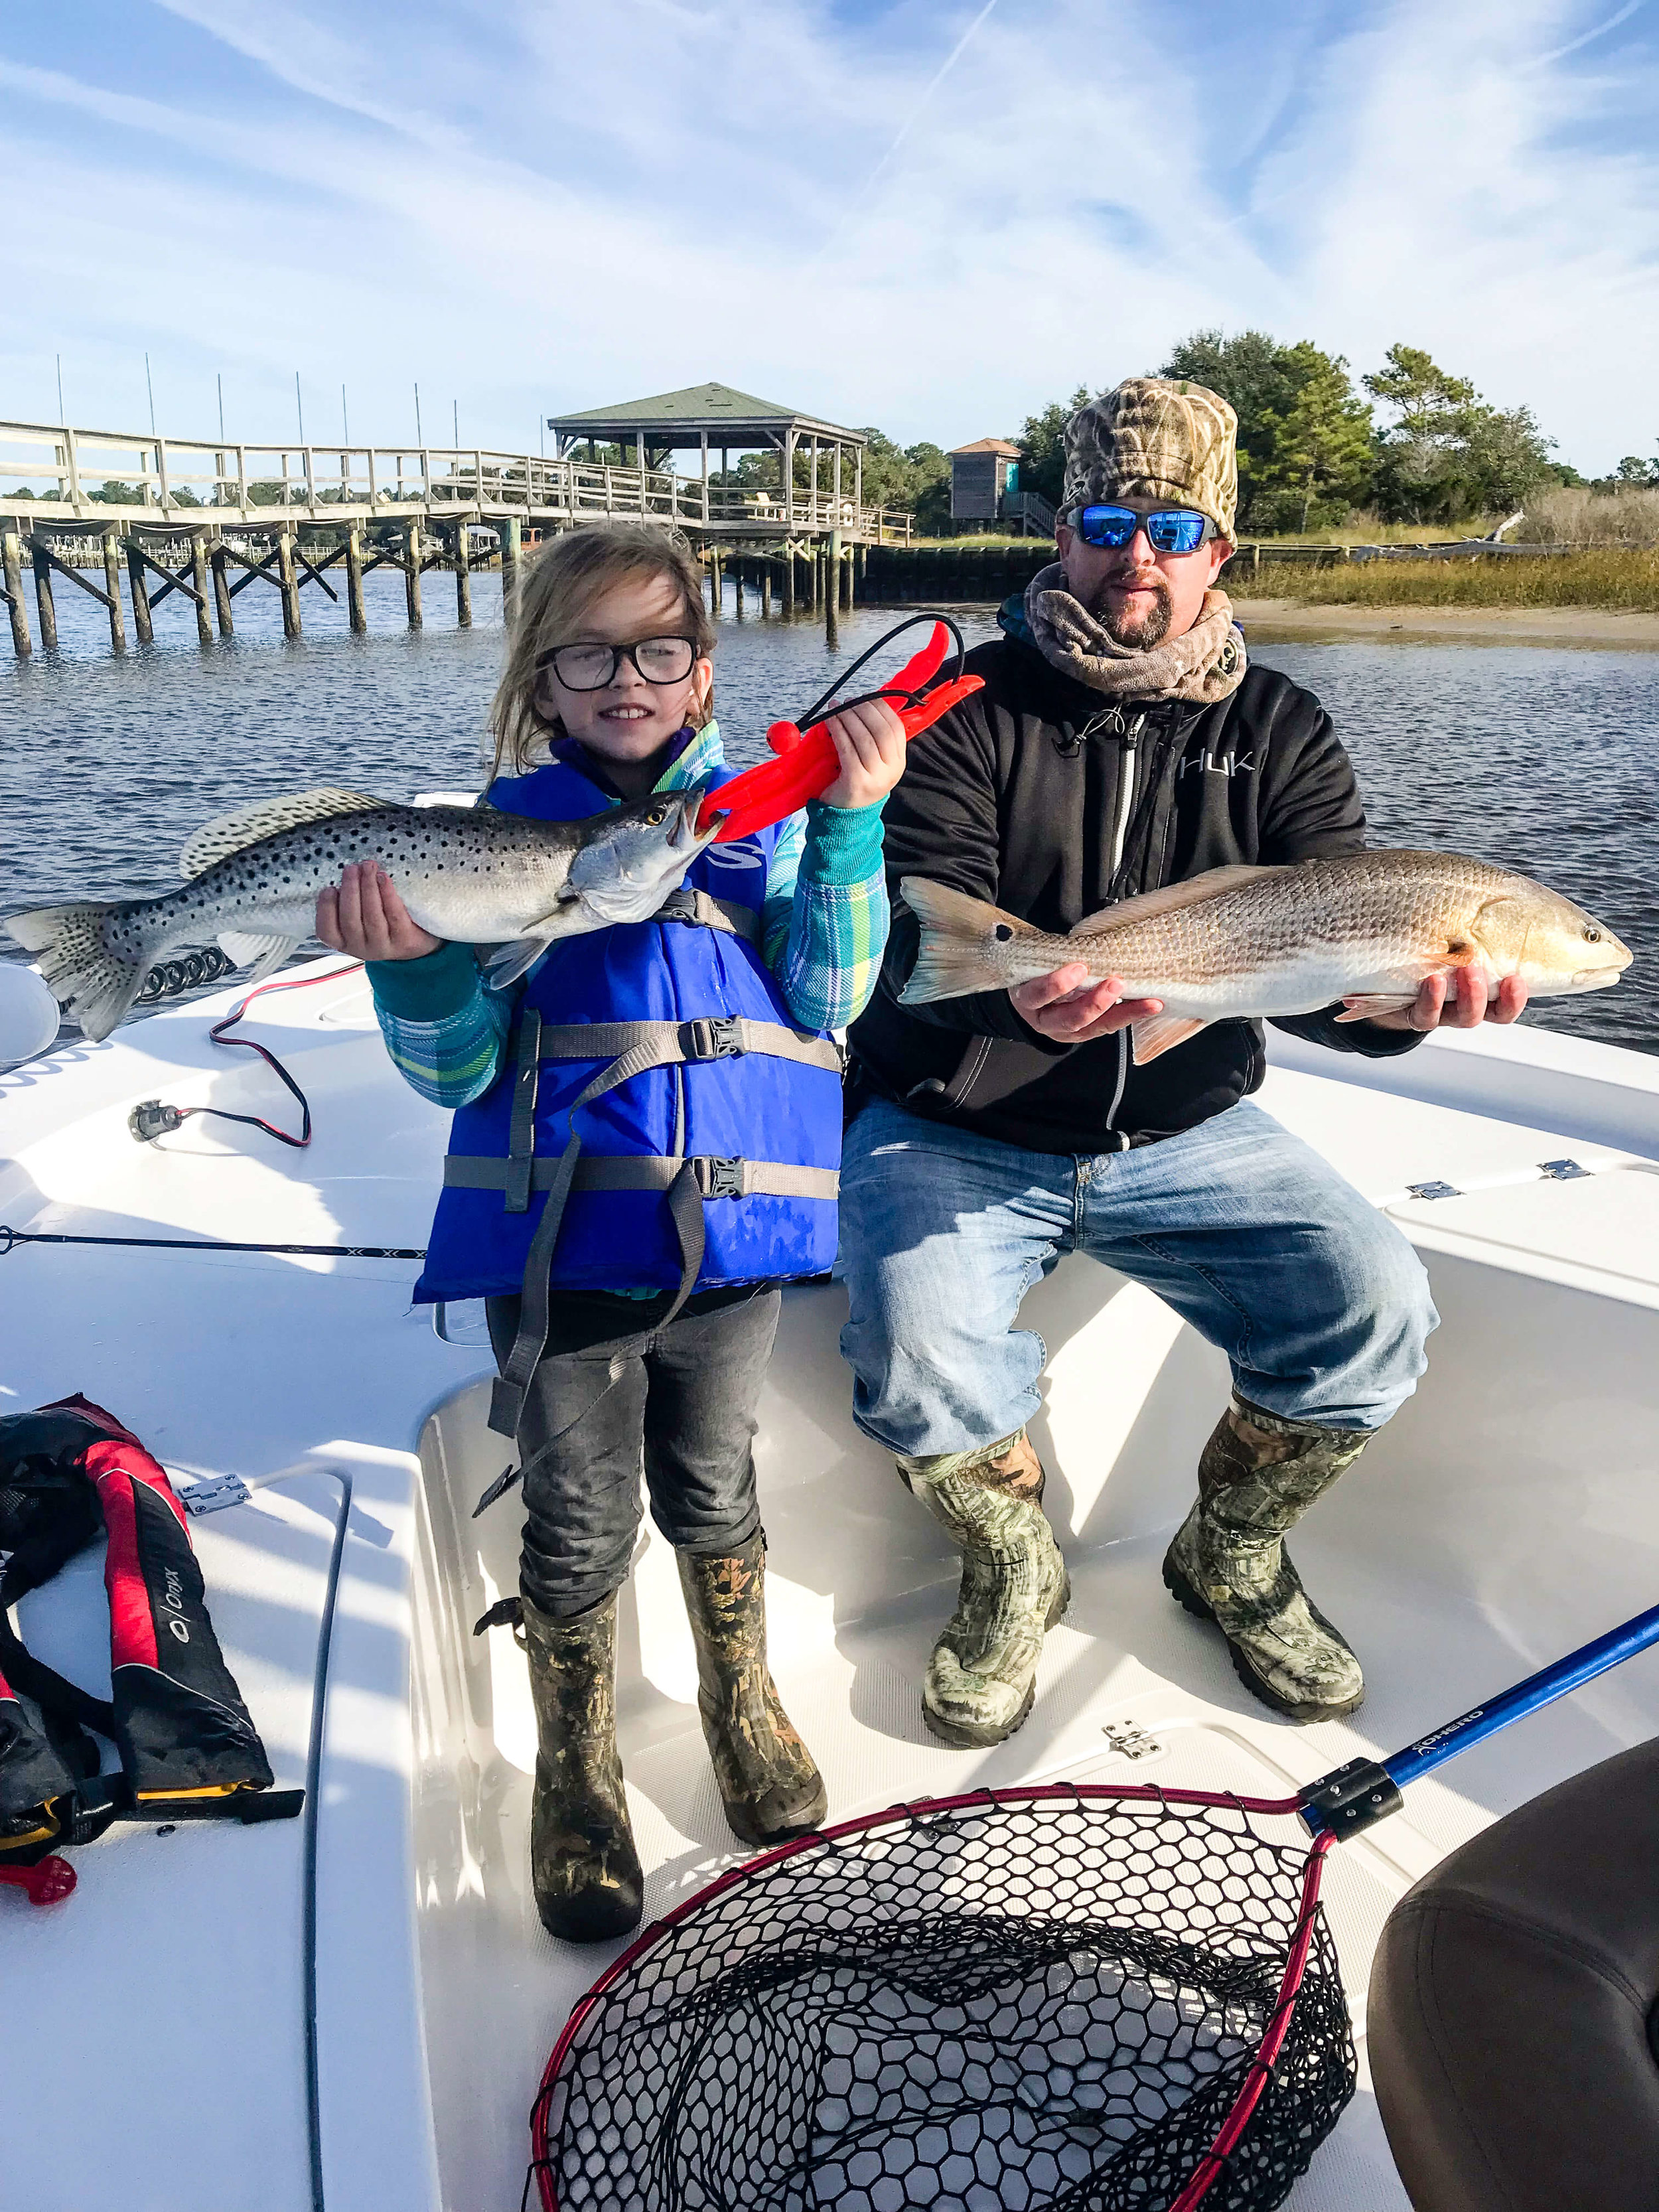 Fun for Kids and Families! - At Rip N Lips Charters we love to share the love of fishing with kids and families! Half Day Fishing Trips last up to 6 hours!$550 for up to 4 peopleLife vests in all sizes are available!25' Tidewater Carolina Bay BoatLicensed Captain Ray DixonALSO INCLUDED:All Safety Equipment Including Life VestsFishing RodsBait & TackleBook your trip! ➝